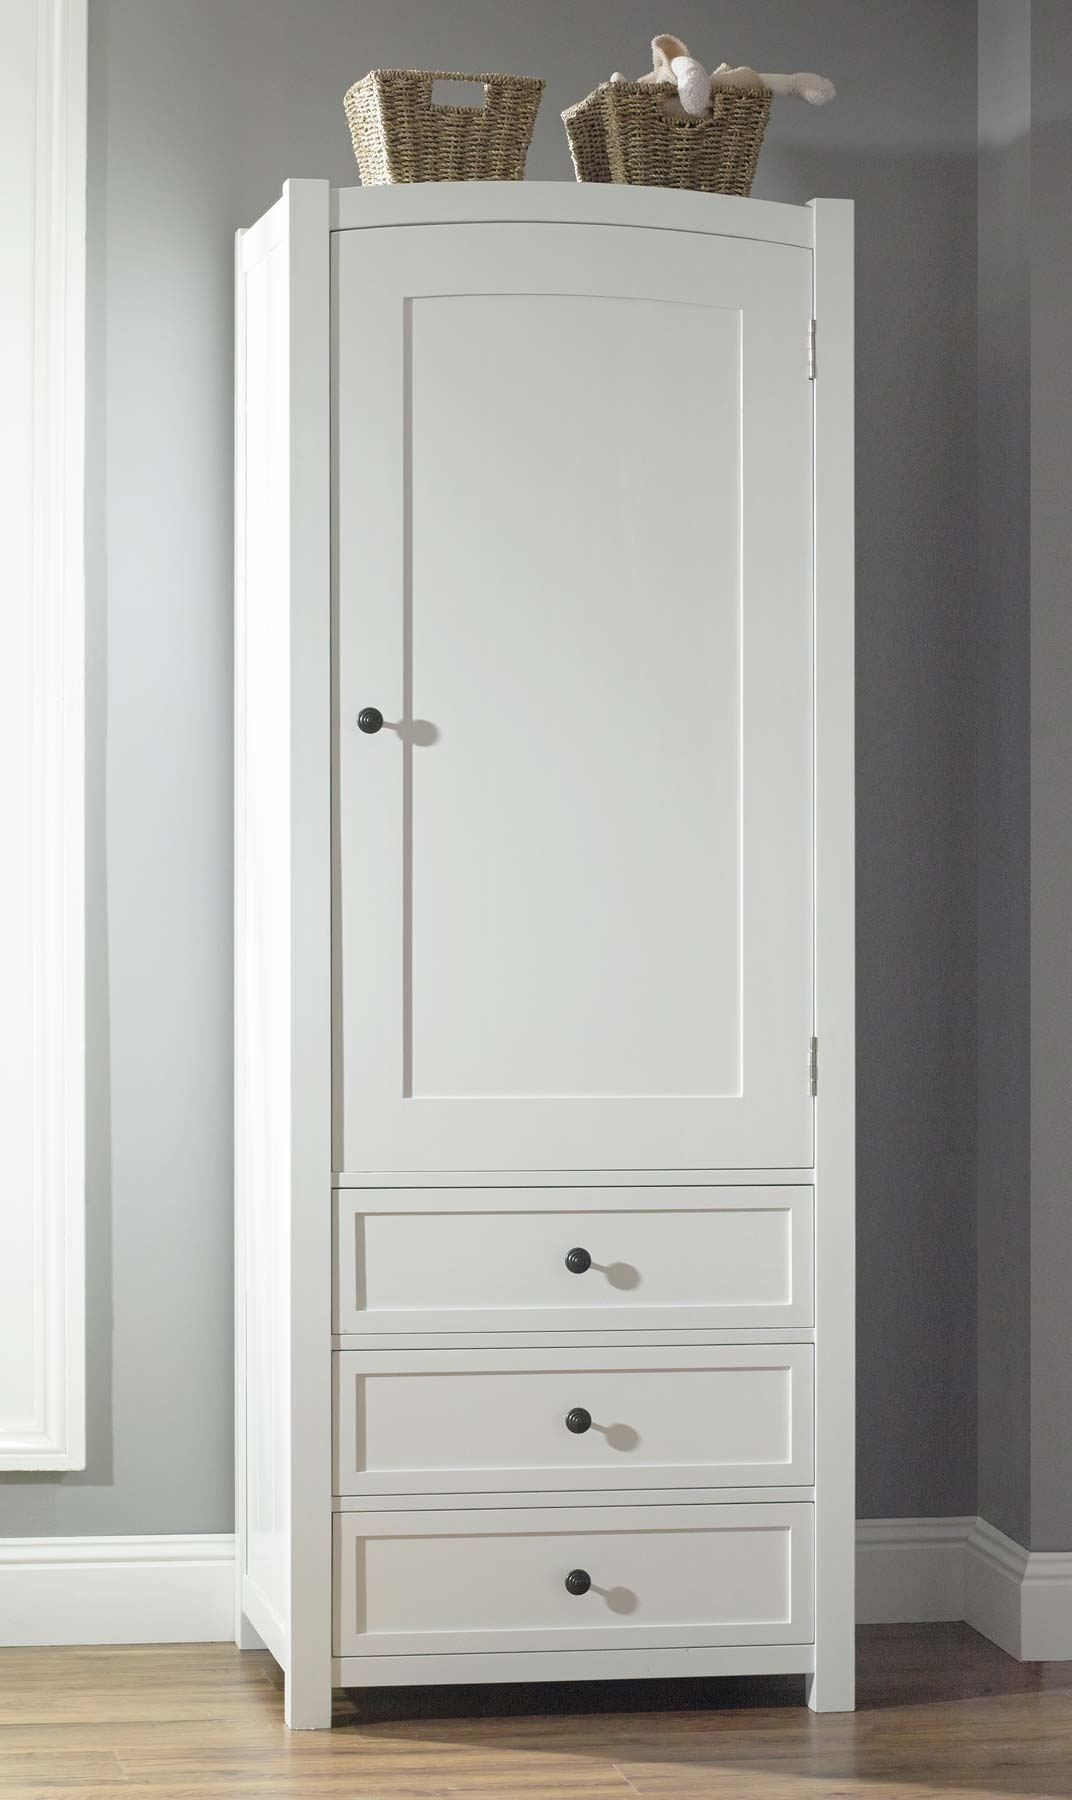 Widely Used Single Wardrobe With Drawers Uk And Mirror Oak This Is Best Design Throughout Single Oak Wardrobes With Drawers (View 15 of 15)